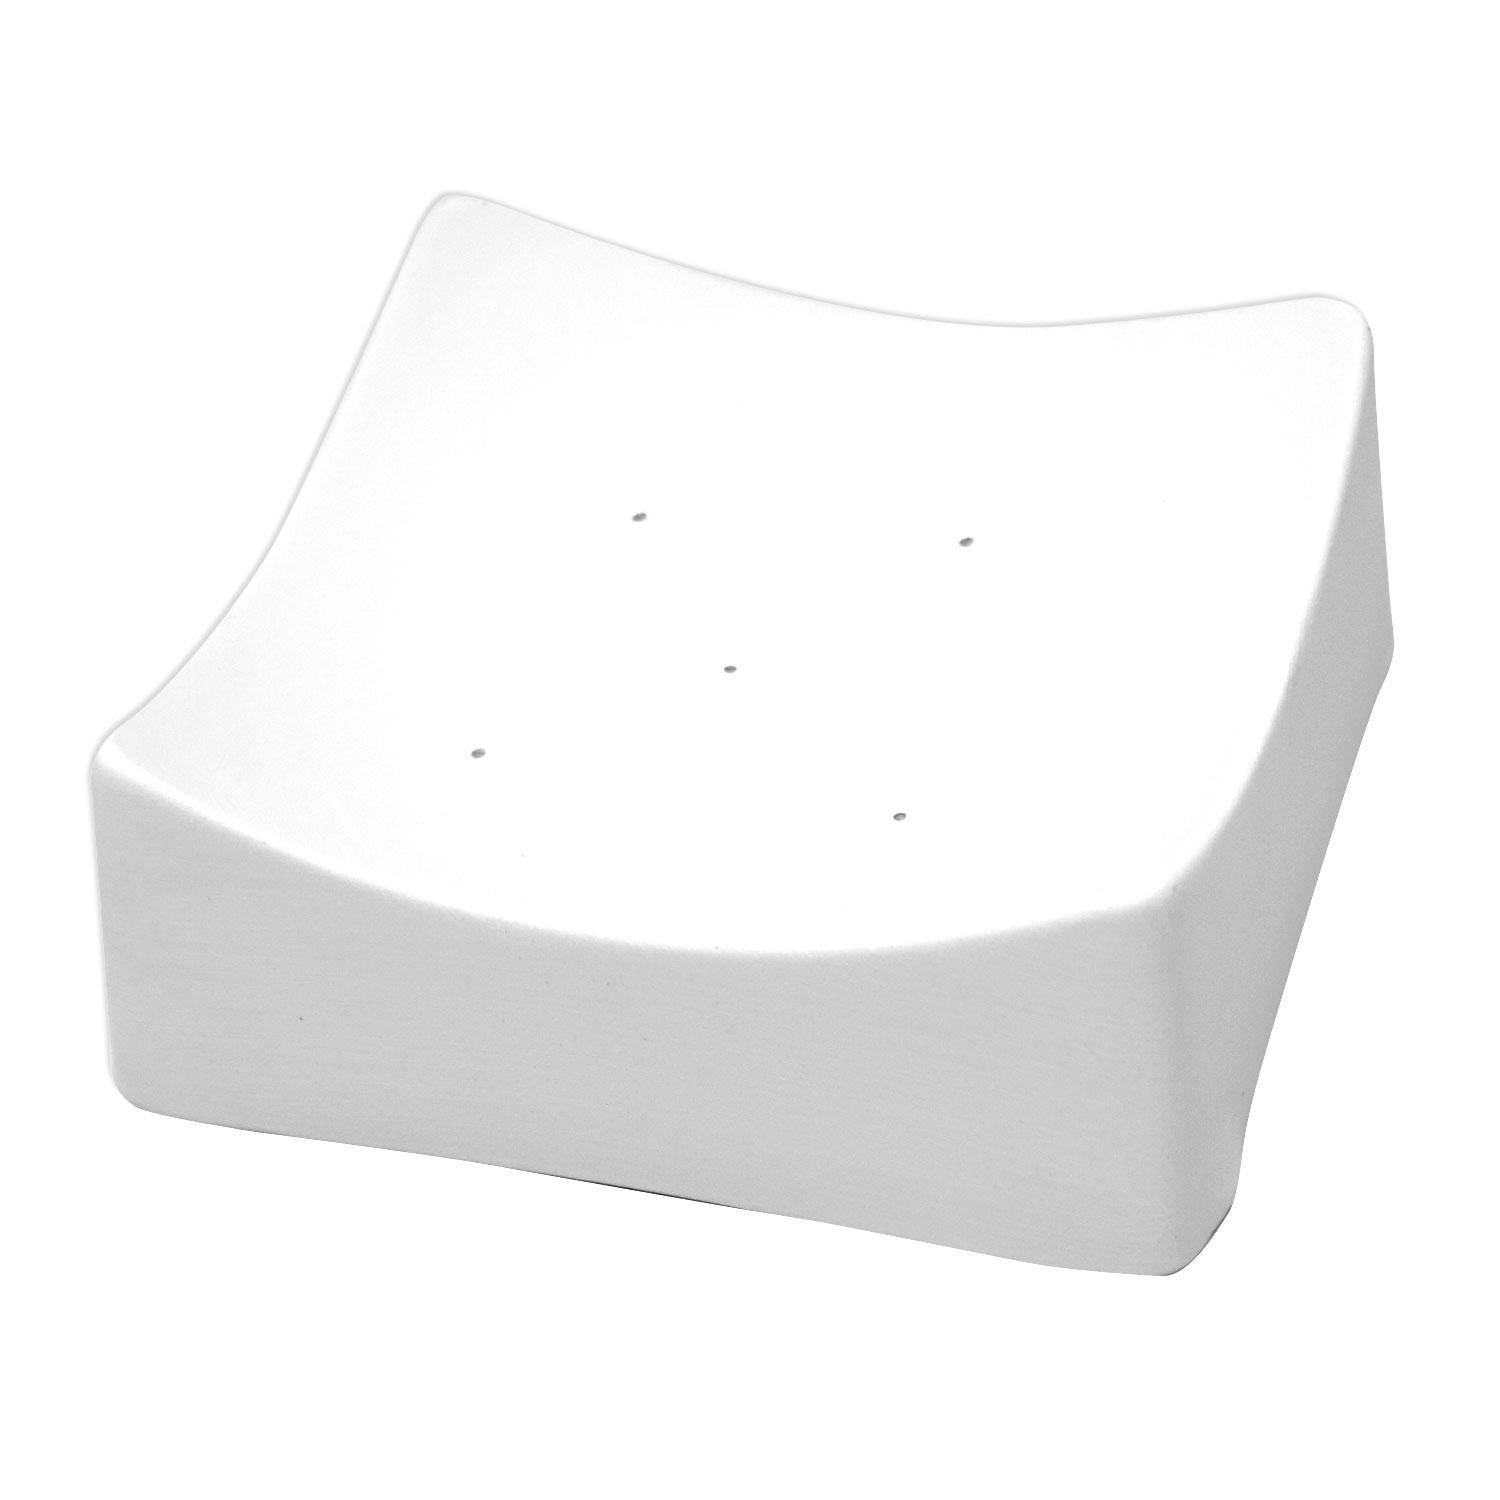 4-1/2 Square Dish Mold